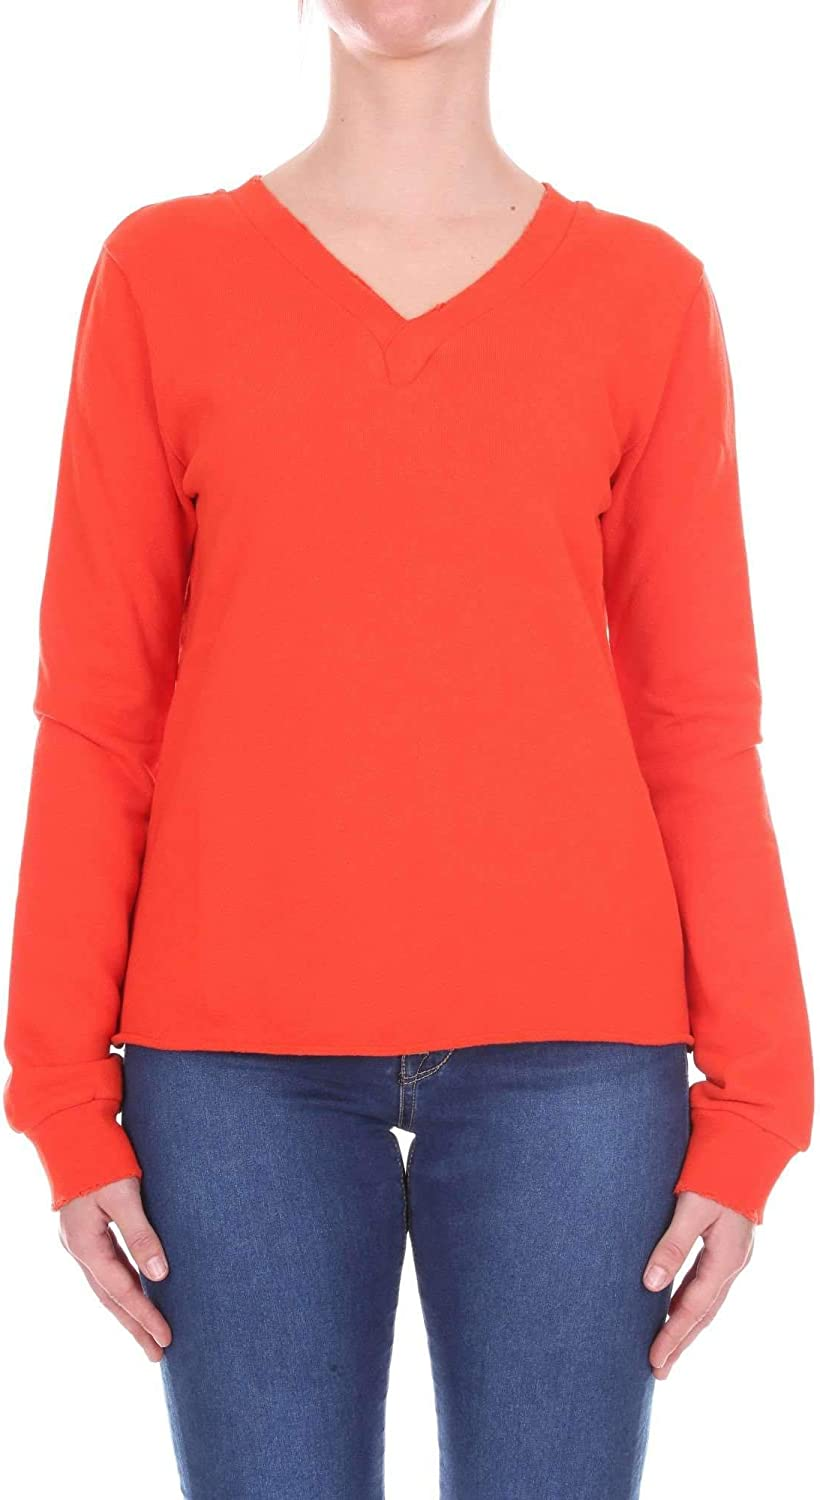 CURRENT ELLIOT Women's 181001931orange orange Cotton Sweatshirt